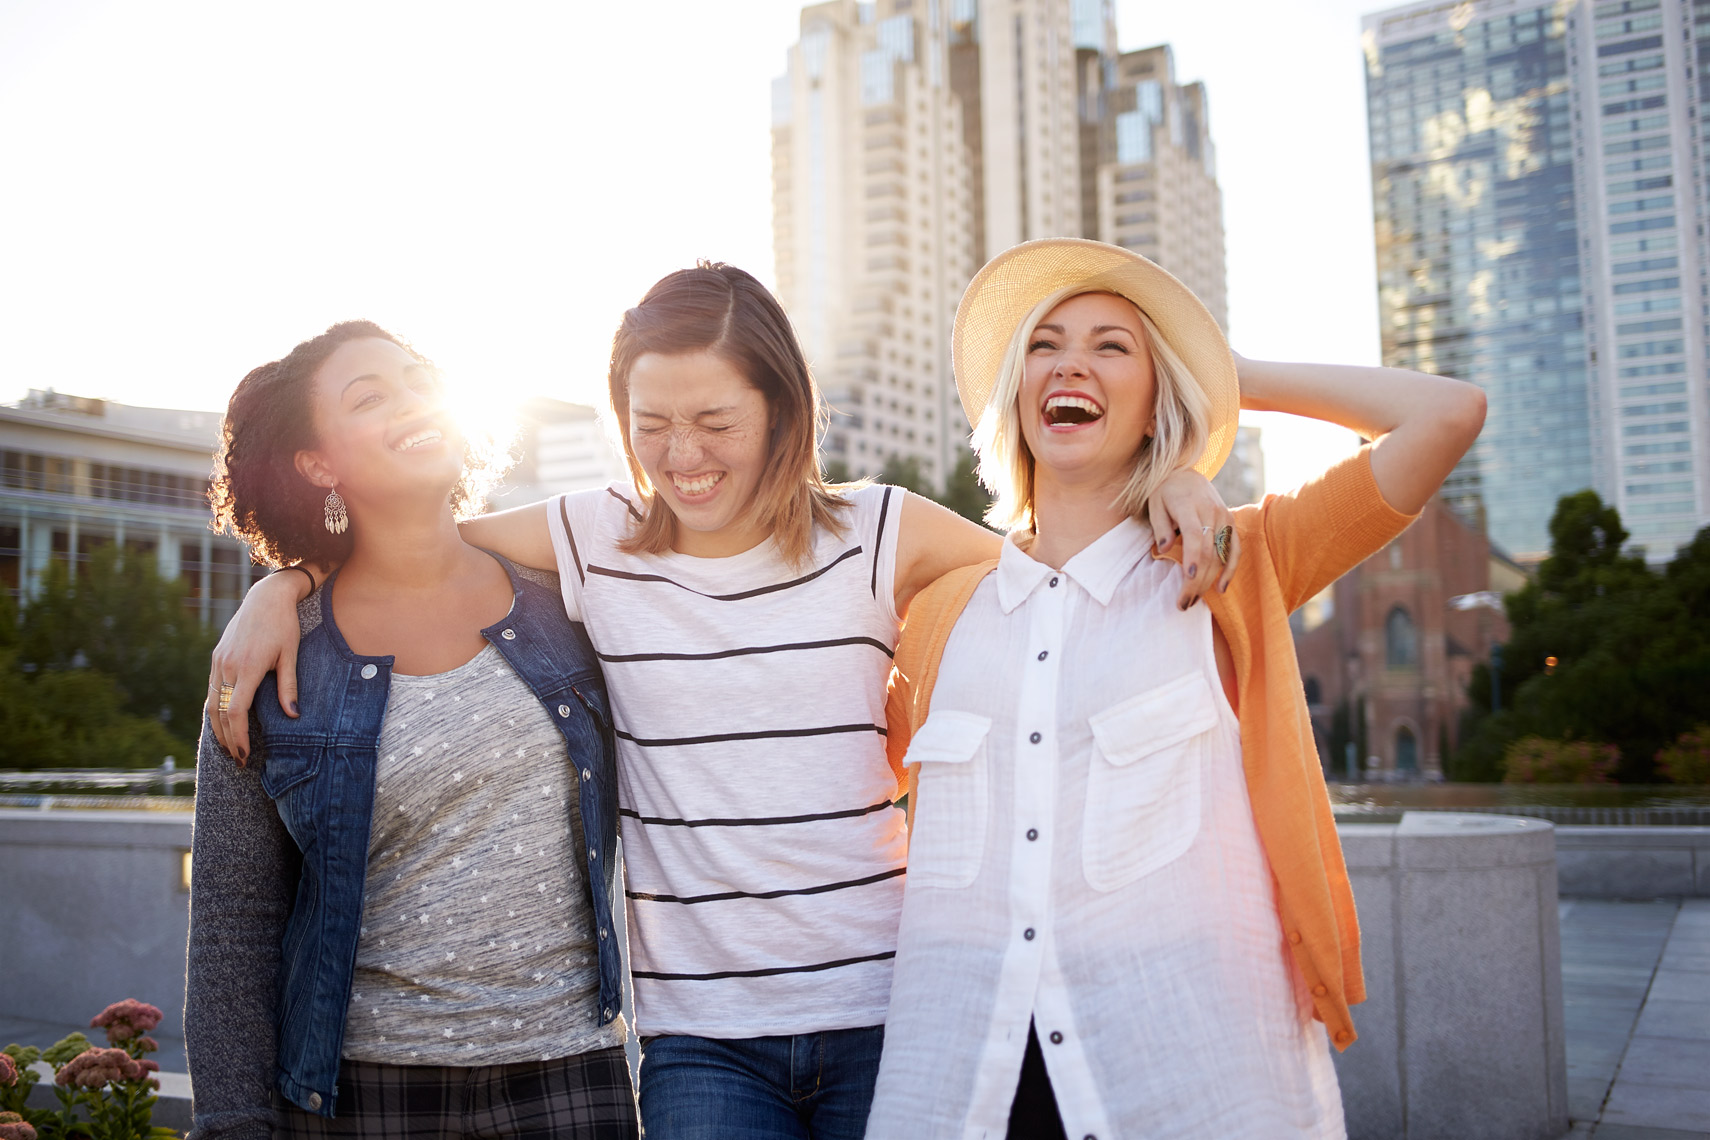 lifestyle photographer, advertising photographer, girls, friends laughing, girls in the city, girl with hats, blond girl